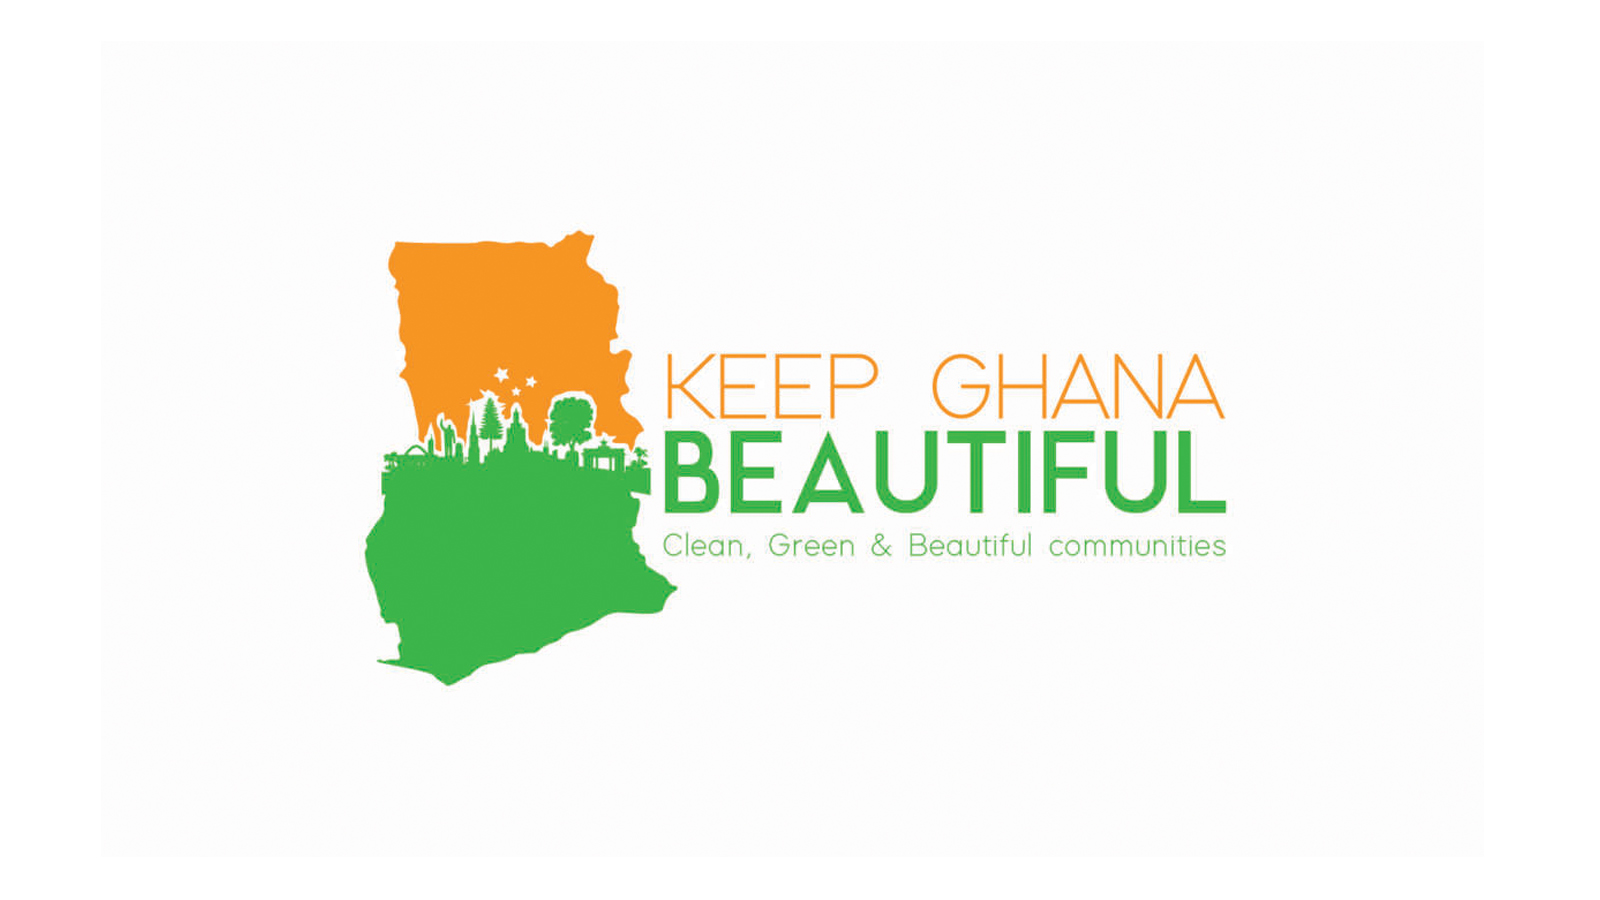 Keep Ghana Beautiful receives in-kind support from US National nonprofit